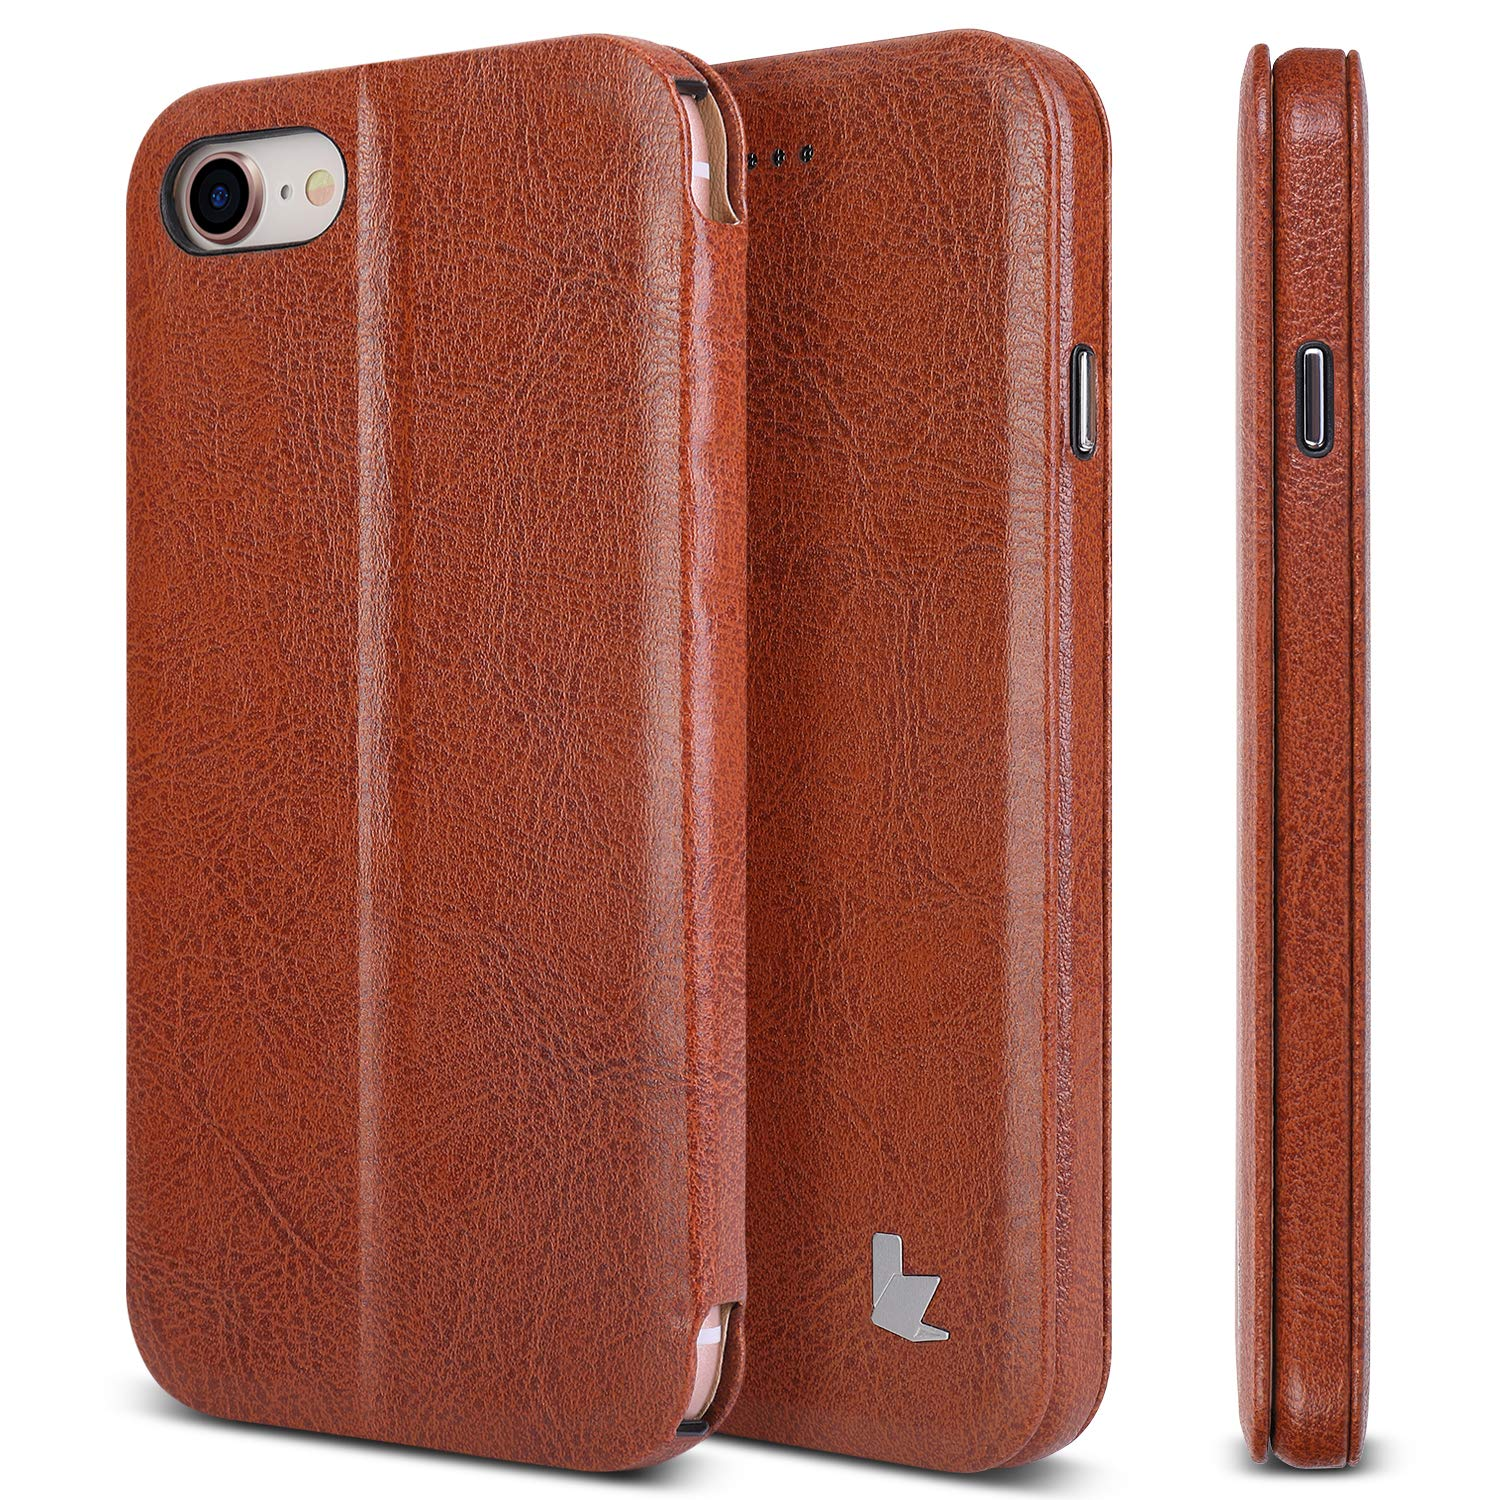 d63e72a26db JISONCASE iPhone 8 Case, Slim Folio Pu Leather Stand Case/Cover for Apple  iPhone 8 iPhone 7 Magnetic Flip Folio Sleeve Case(Gift Boxed) Brown  JS-IP8-02M20